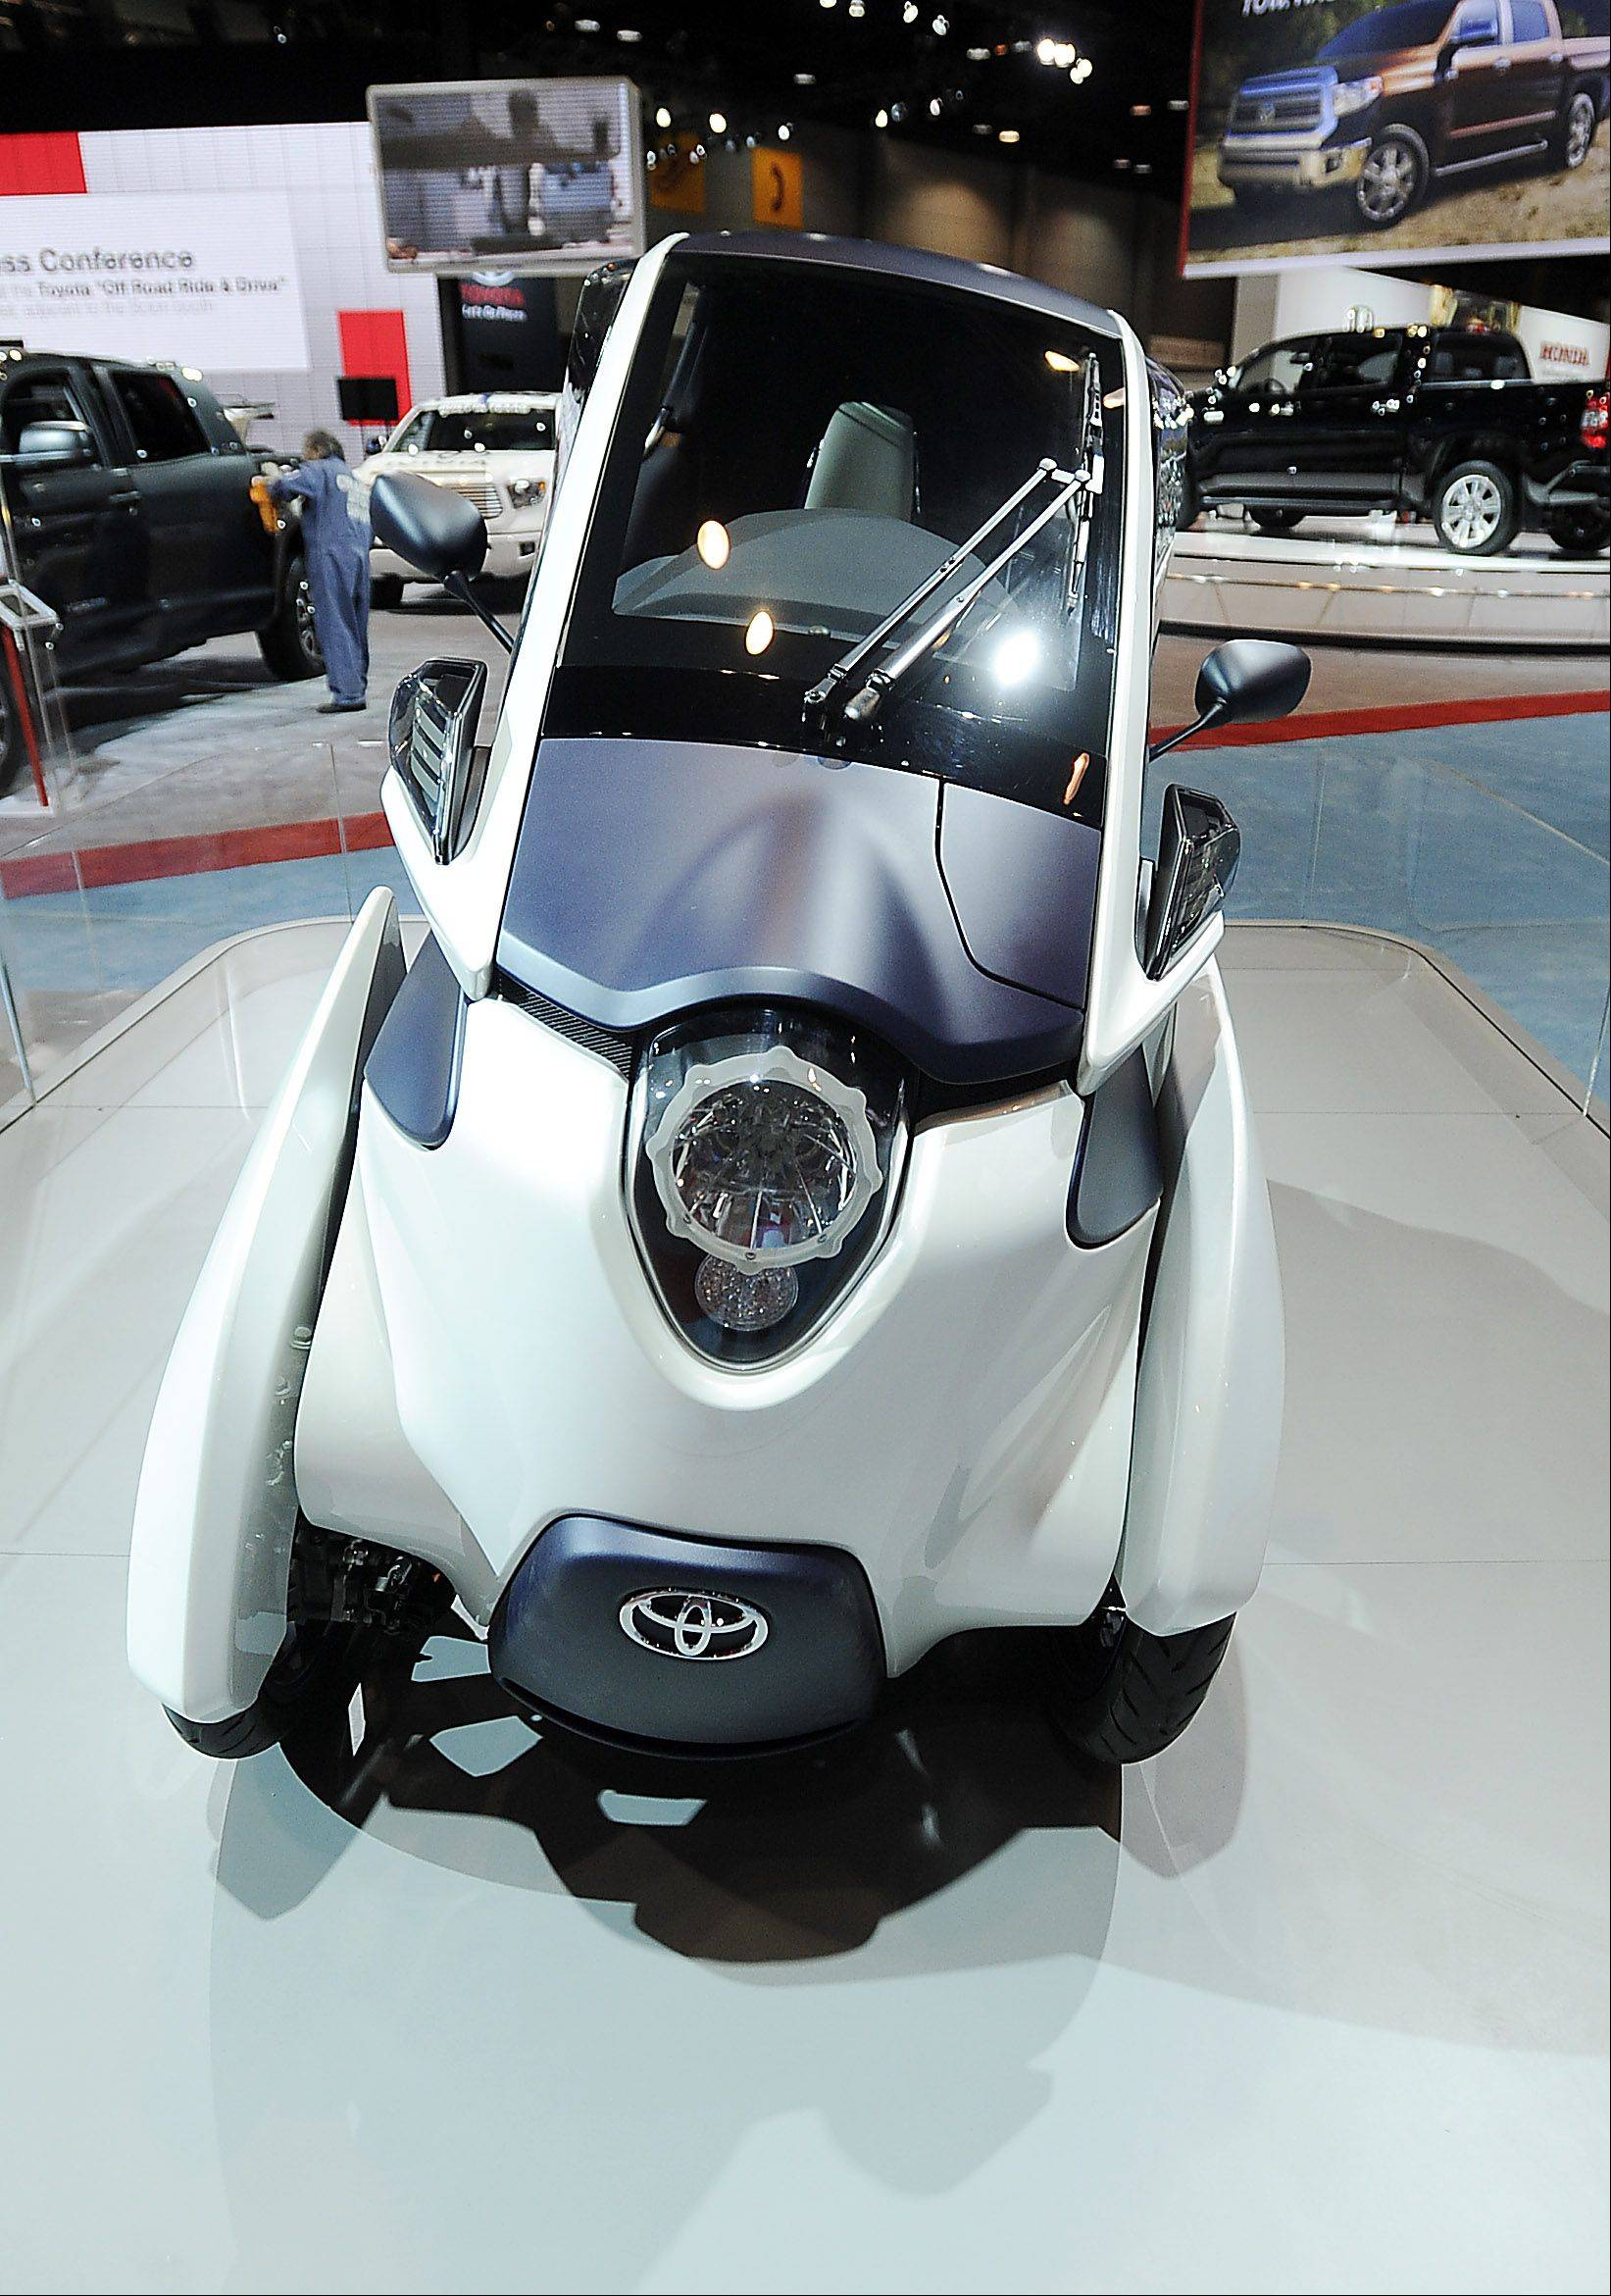 Auto show brings excitement to winter doldrums